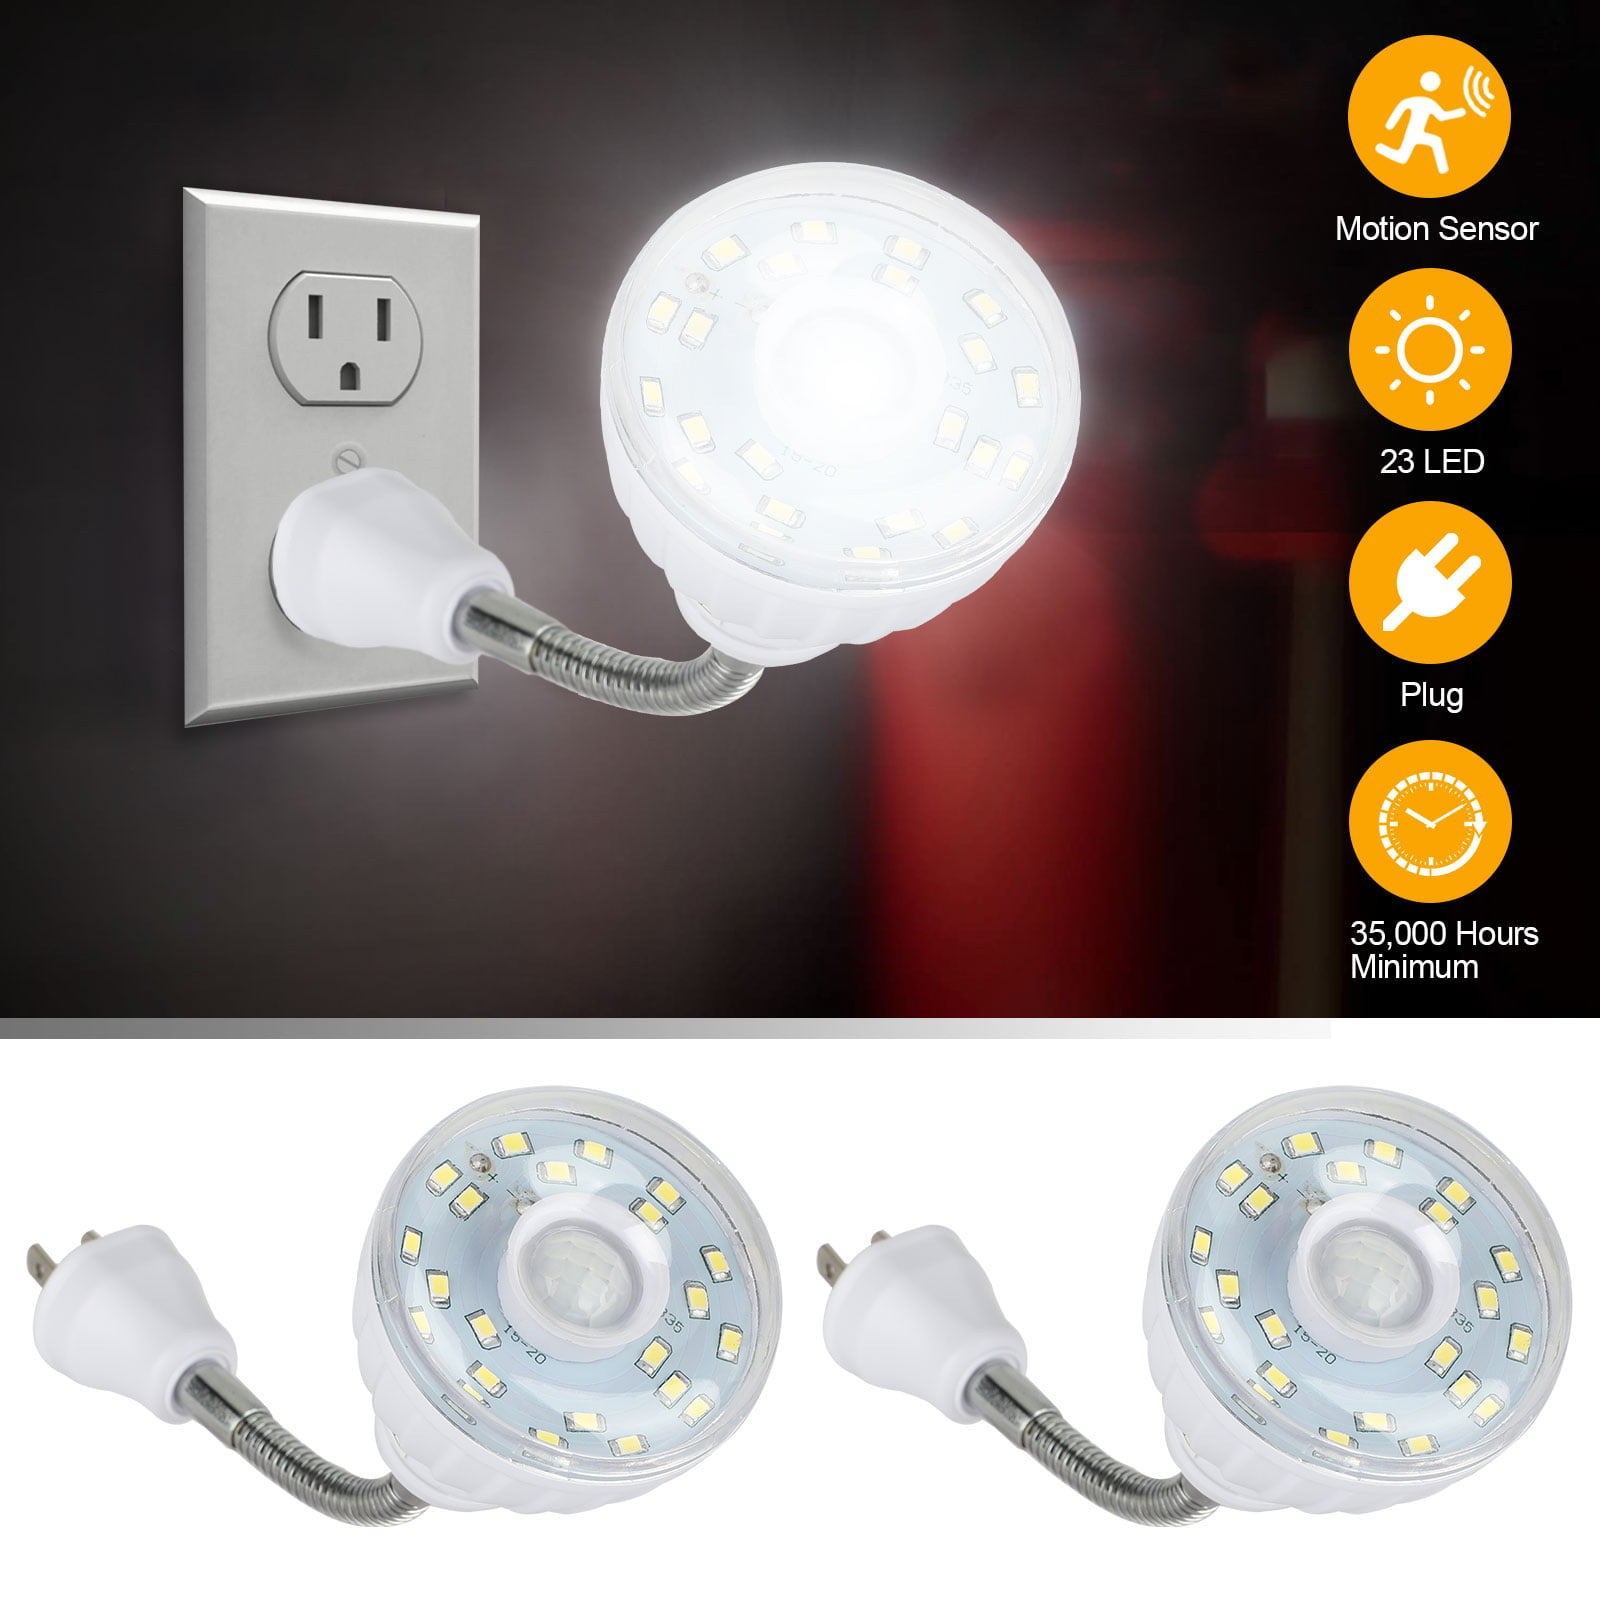 Details about  /Kids Bedroom Home Wall Corridor Motion Sensor LED Night Light Battery Operated